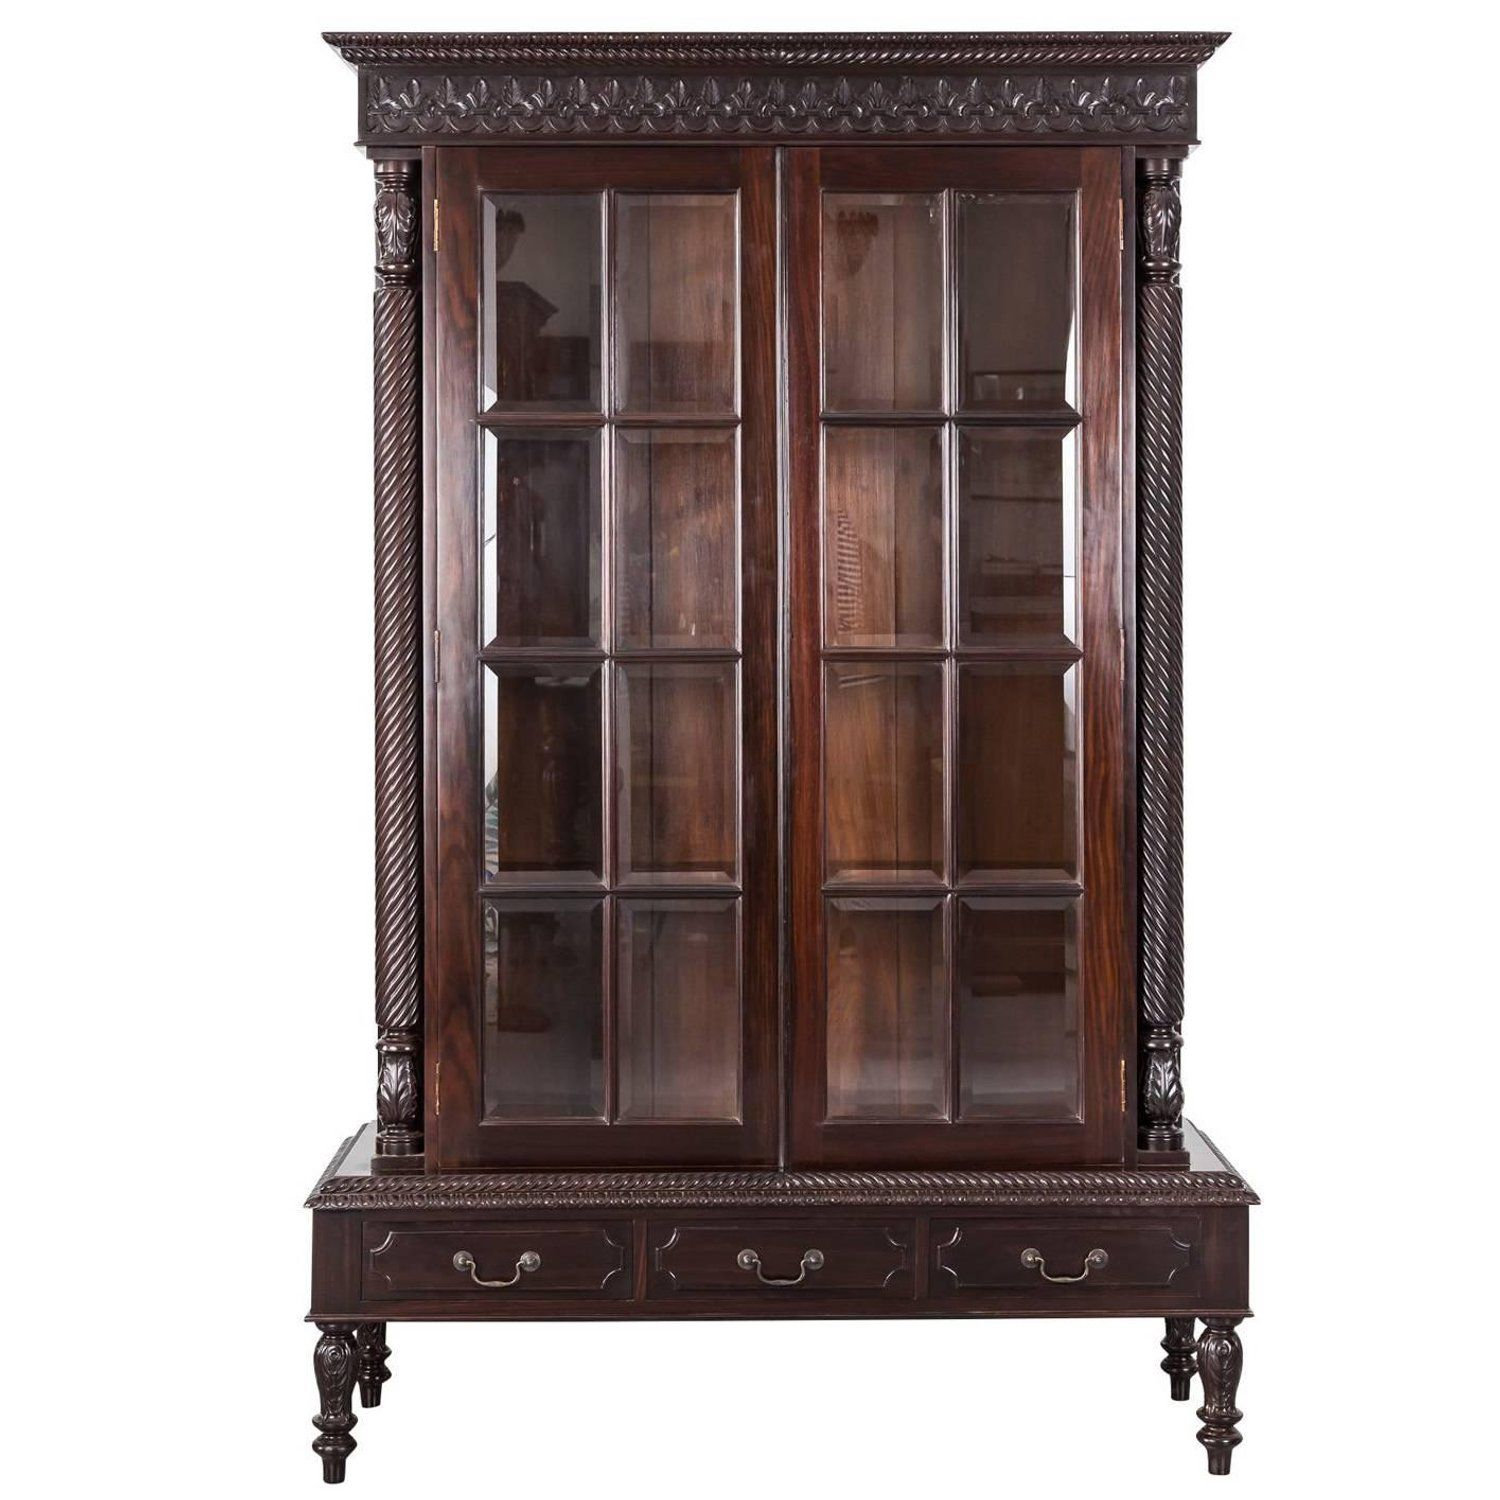 antique anglo indian or british colonial rosewood cabinet on stand rh pinterest com